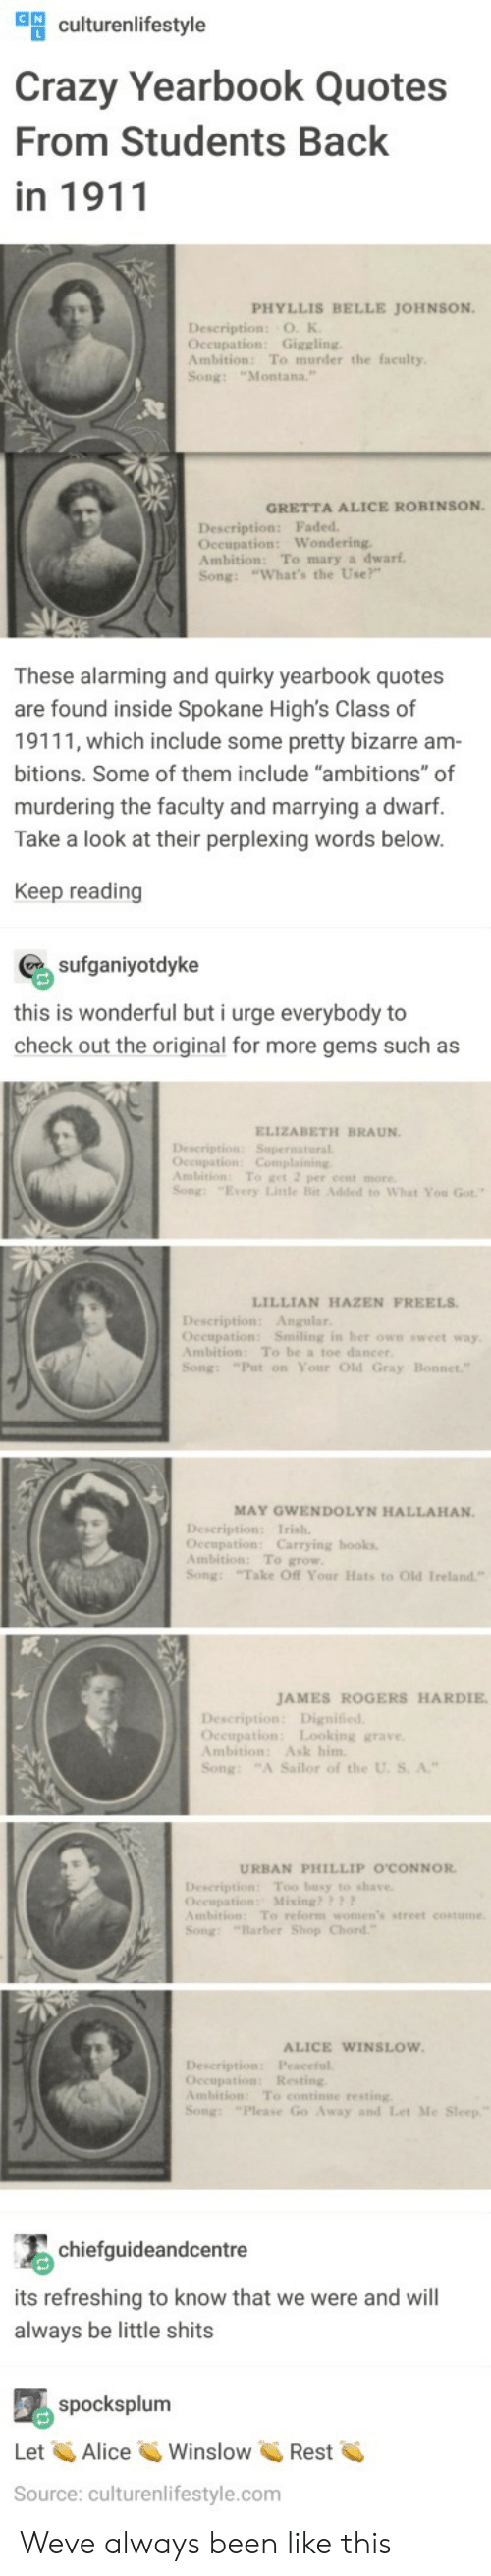 "occupation: ulturenlifestyle  Crazy Yearbook Quotes  From Students Back  in 1911  PHYLLIS BELLE JOHNSON  Description: O. K  Occupation: Giggling  Ambition: To murder the faculty  Song: ""Montana.  GRETTA ALICE ROBINSON  Description: Faded  Oceupation: Wondering  Ambition: To mary a dwarf  Song: ""What's the Use?""  These alarming and quirky yearbook quotes  are found inside Spokane High's Class of  19111, which include some pretty bizarre am  bitions. Some of them include ""ambitions"" of  murdering the faculty and marrying a dwarf.  Take a look at their perplexing words below  Keep reading  sufganiyotdyke  this is wonderful but i urge everybody to  check out the original for more gems such as  ELIZABETH BRAUN  Description: Supernatural  Ambition: To get 2 per cent more  Song: ""Every Litle Bit Added to What You Got  LILLIAN HAZEN FREELS  Description: Angular  Oceupation: Smiling in her own sweet way  Ambition: To be a toe dancer  Song: ""Put on Your Old Gray  MAY GWENDOLYN HALLAHAN.  Occupation: Carrying books  Ambition: To grow  Song: Take Off Your Hats to Old Ireland""  JAMES ROGERS HARDIE  Occupation: Looking grave  Ambition: Ask him  Song: ""A Sailor of the U. S. A.""  URBAN PHILLIP O'CONNOR  Description Too busy to shave  Occupation: Mixing??  mbition: To reform women's street costume  Song: ""Barber Shop Chord  ALICE WINSLOW  Description: Peaceful  Occupation: Resting  Ambition: To continue resting  Song: ""Please Go Away and Let Me  chiefguideandcentre  its refreshing to know that we were and will  always be little shits  spocksplum  Let AliceWinslowRest  Source: culturenlifestyle.com Weve always been like this"